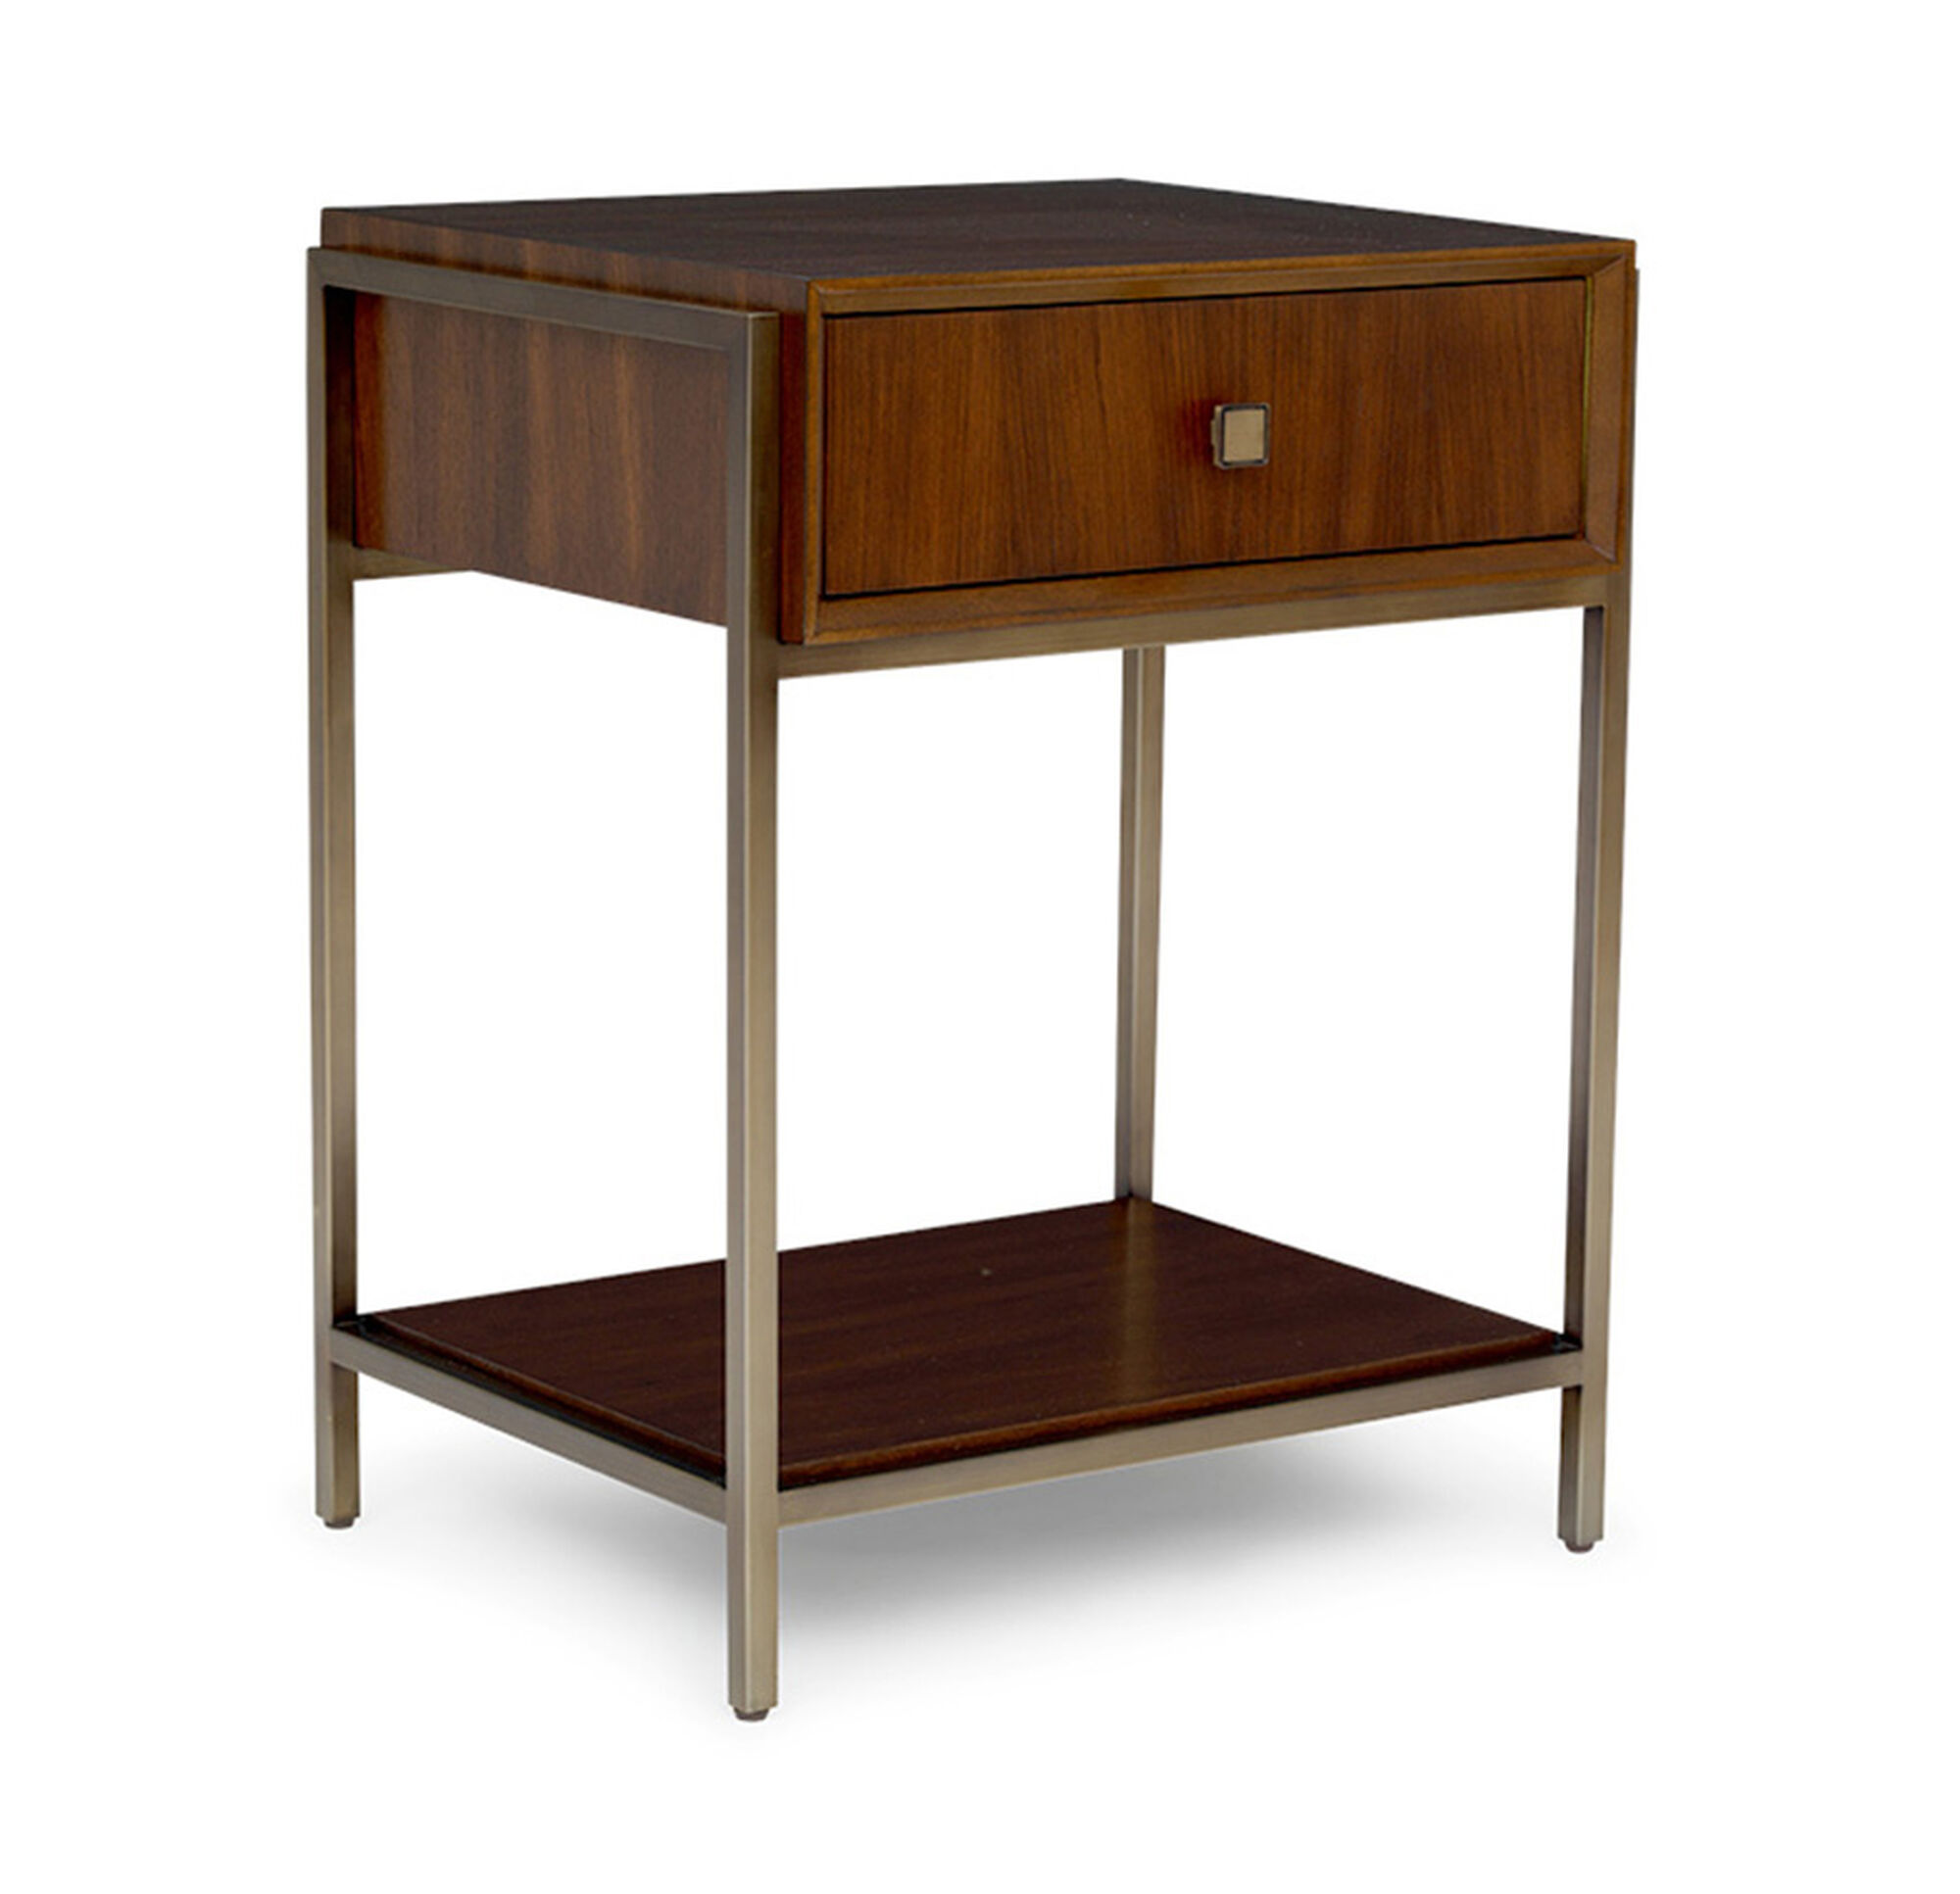 "PEARSON 22"" SIDE TABLE"